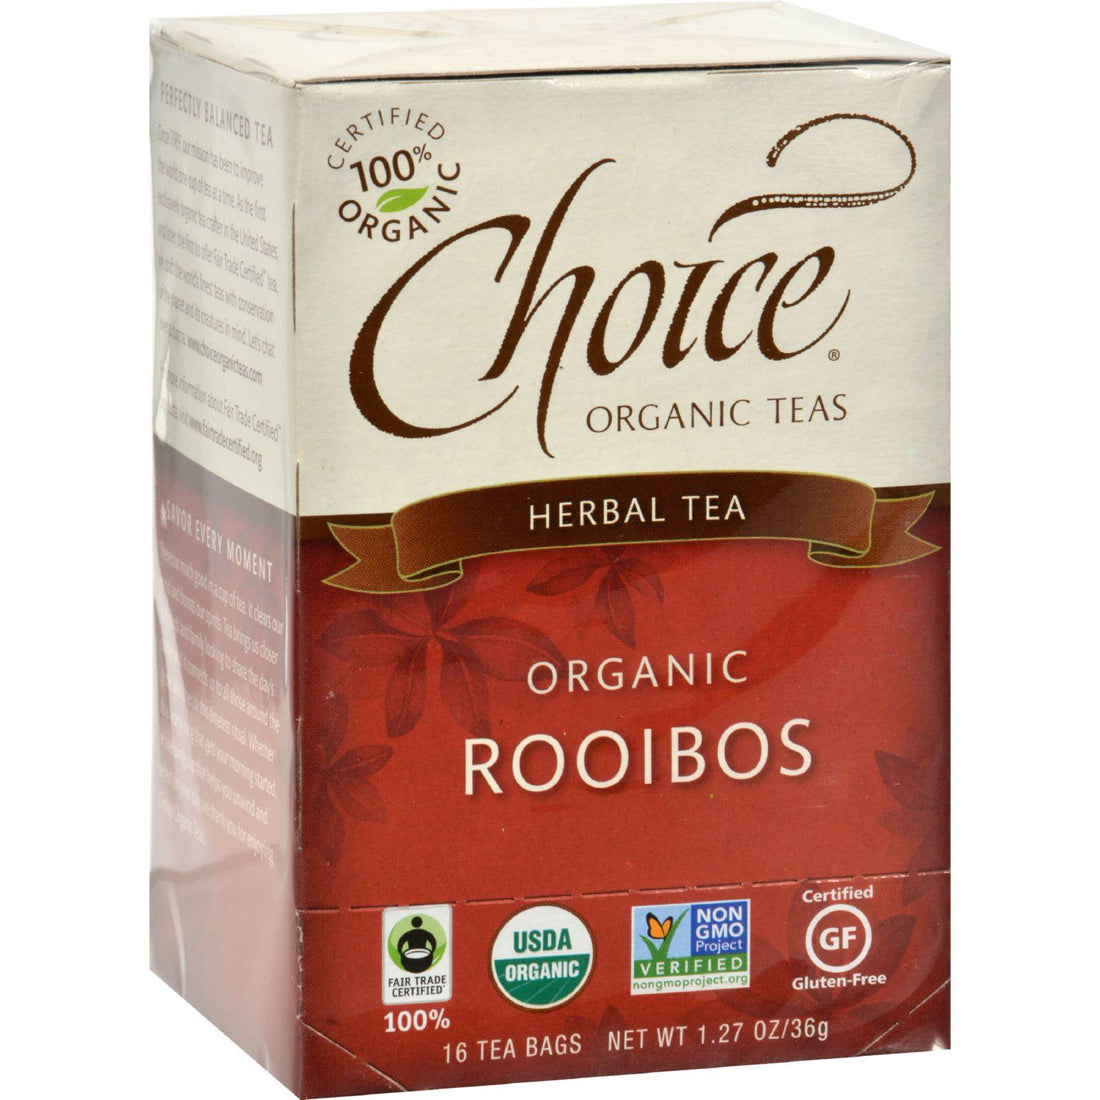 Mother Mantis: Choice Organic Teas Rooibos Red Bush Tea - 16 Tea Bags - Case Of 6 Choice Organic Teas